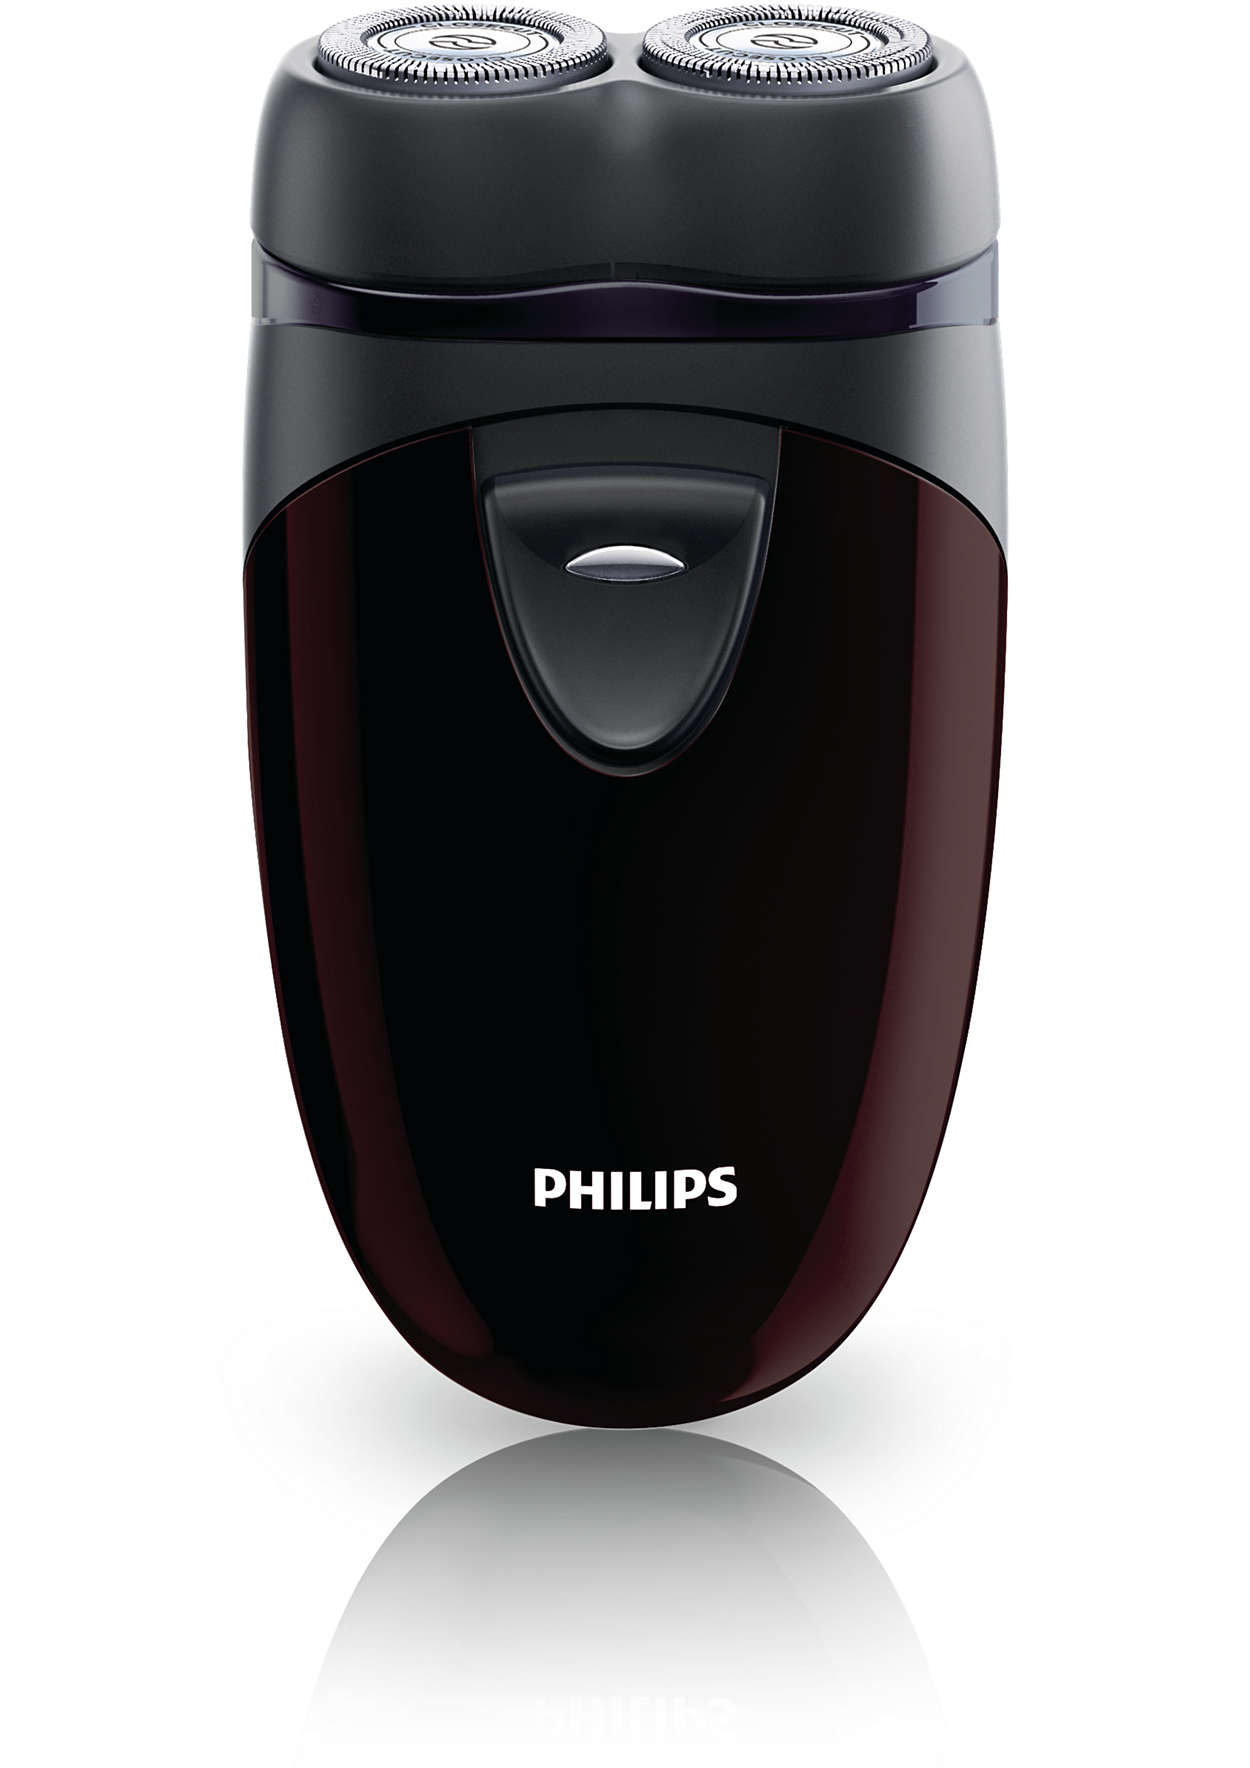 philips shaver cleaner instructions